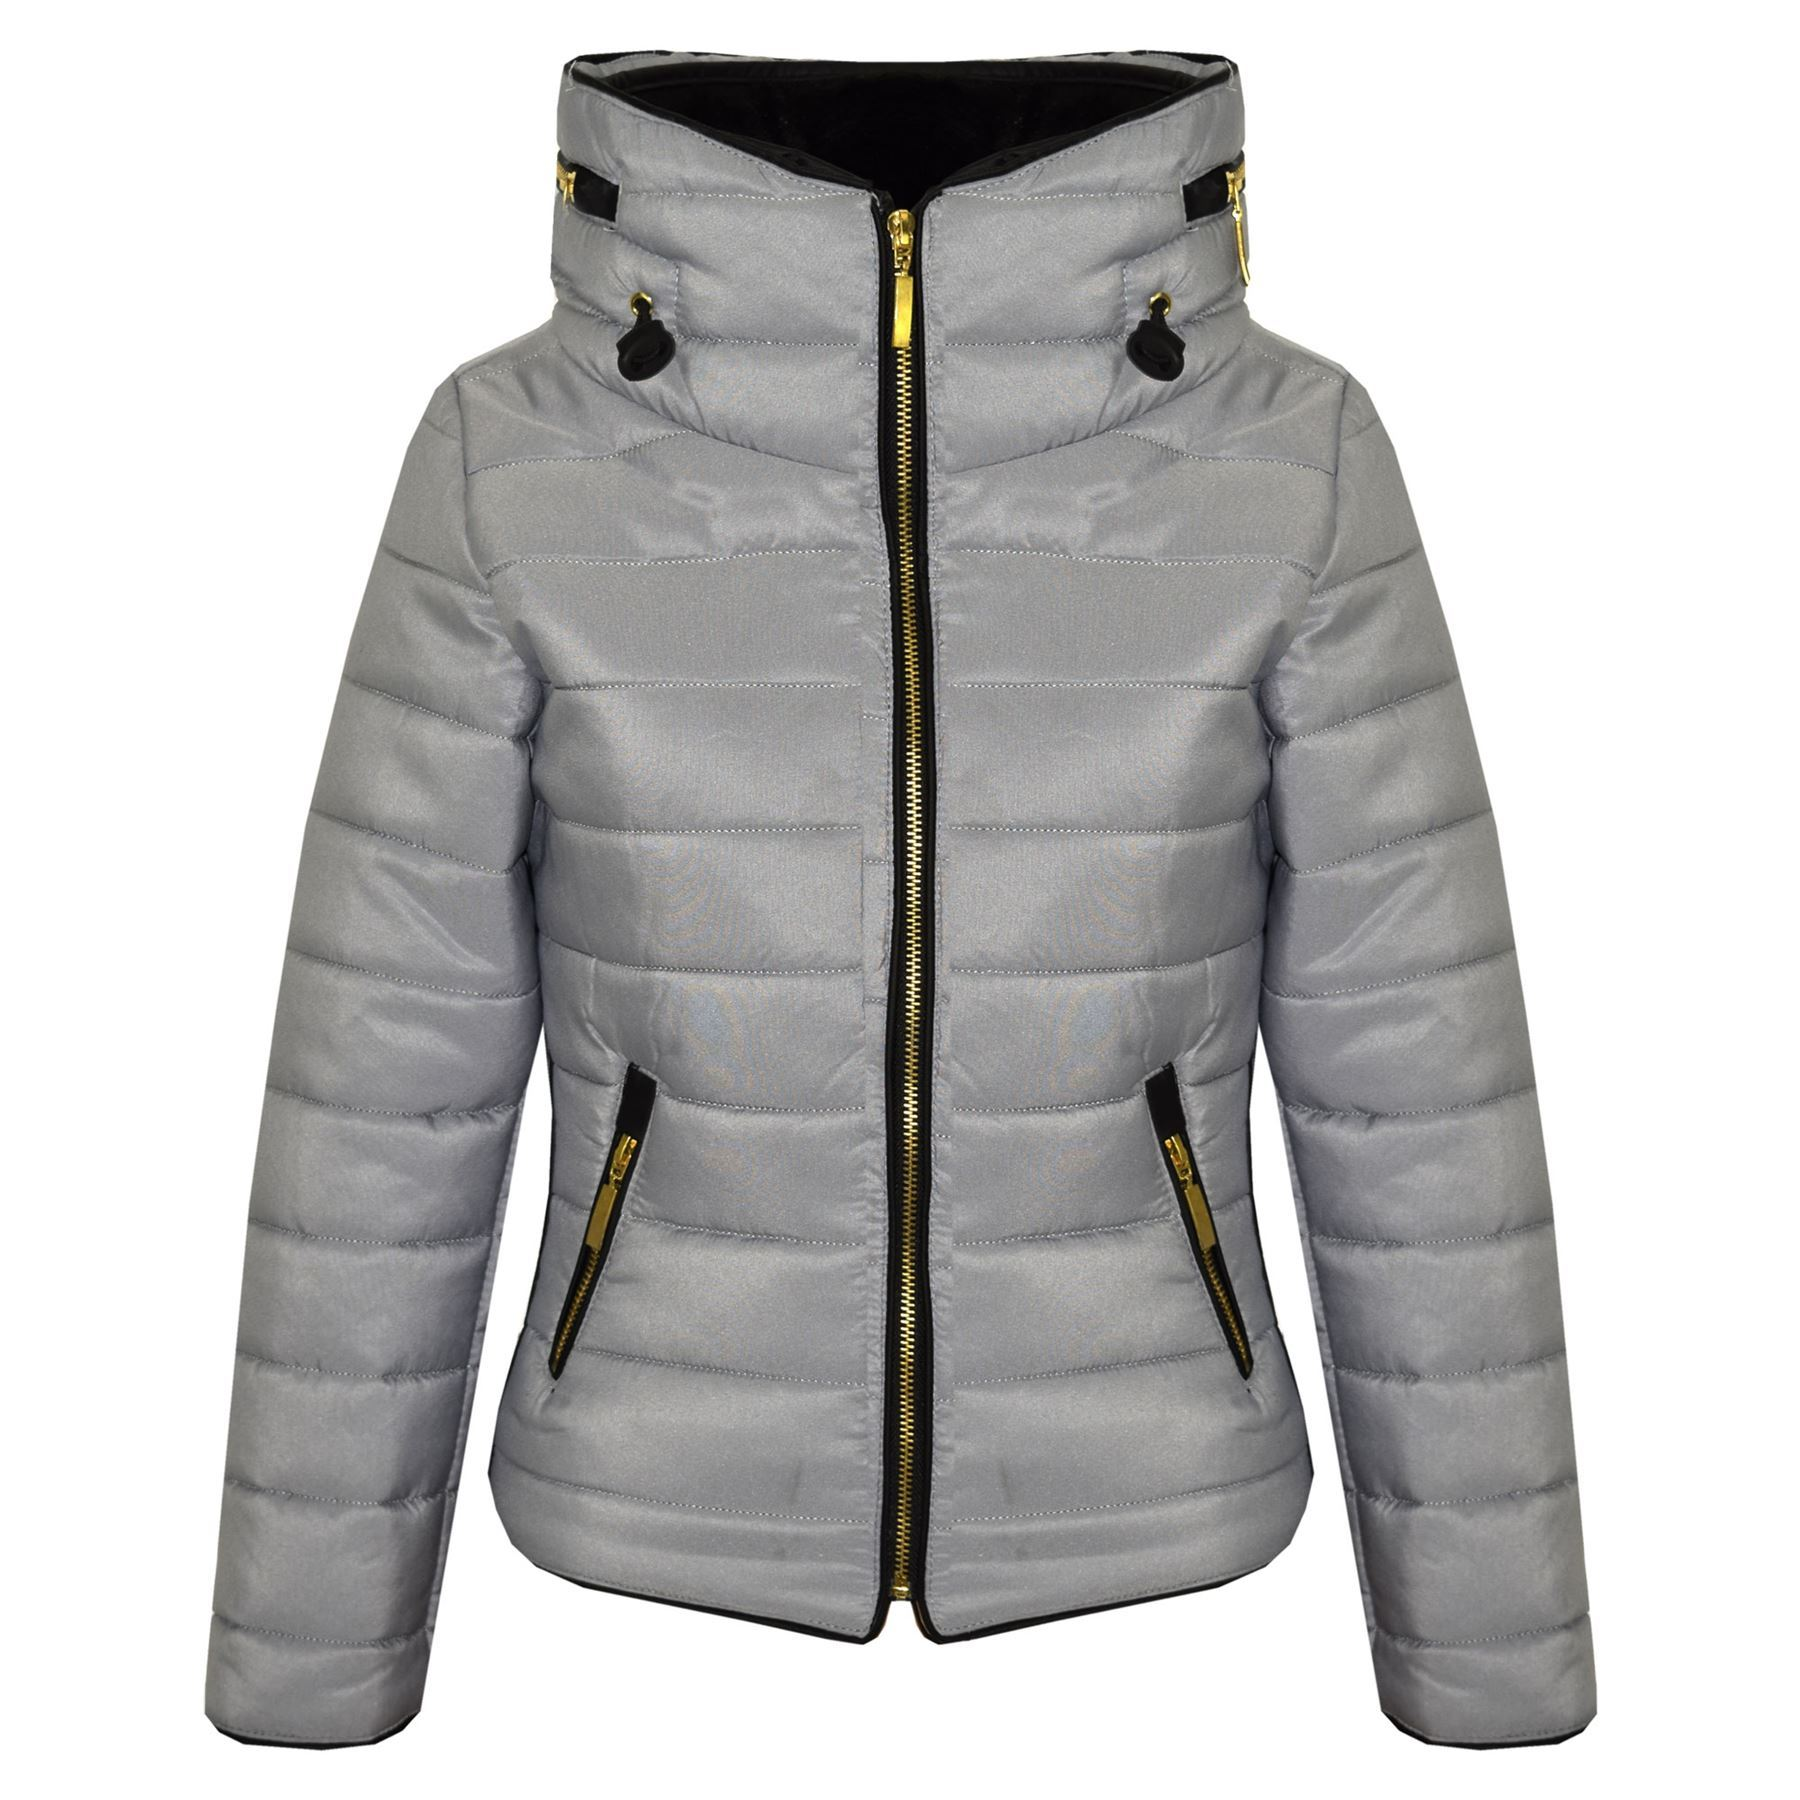 a3af37d7d3a8 Girls Jacket Kids Padded Silver Puffer Bubble Fur Collar Quilted ...